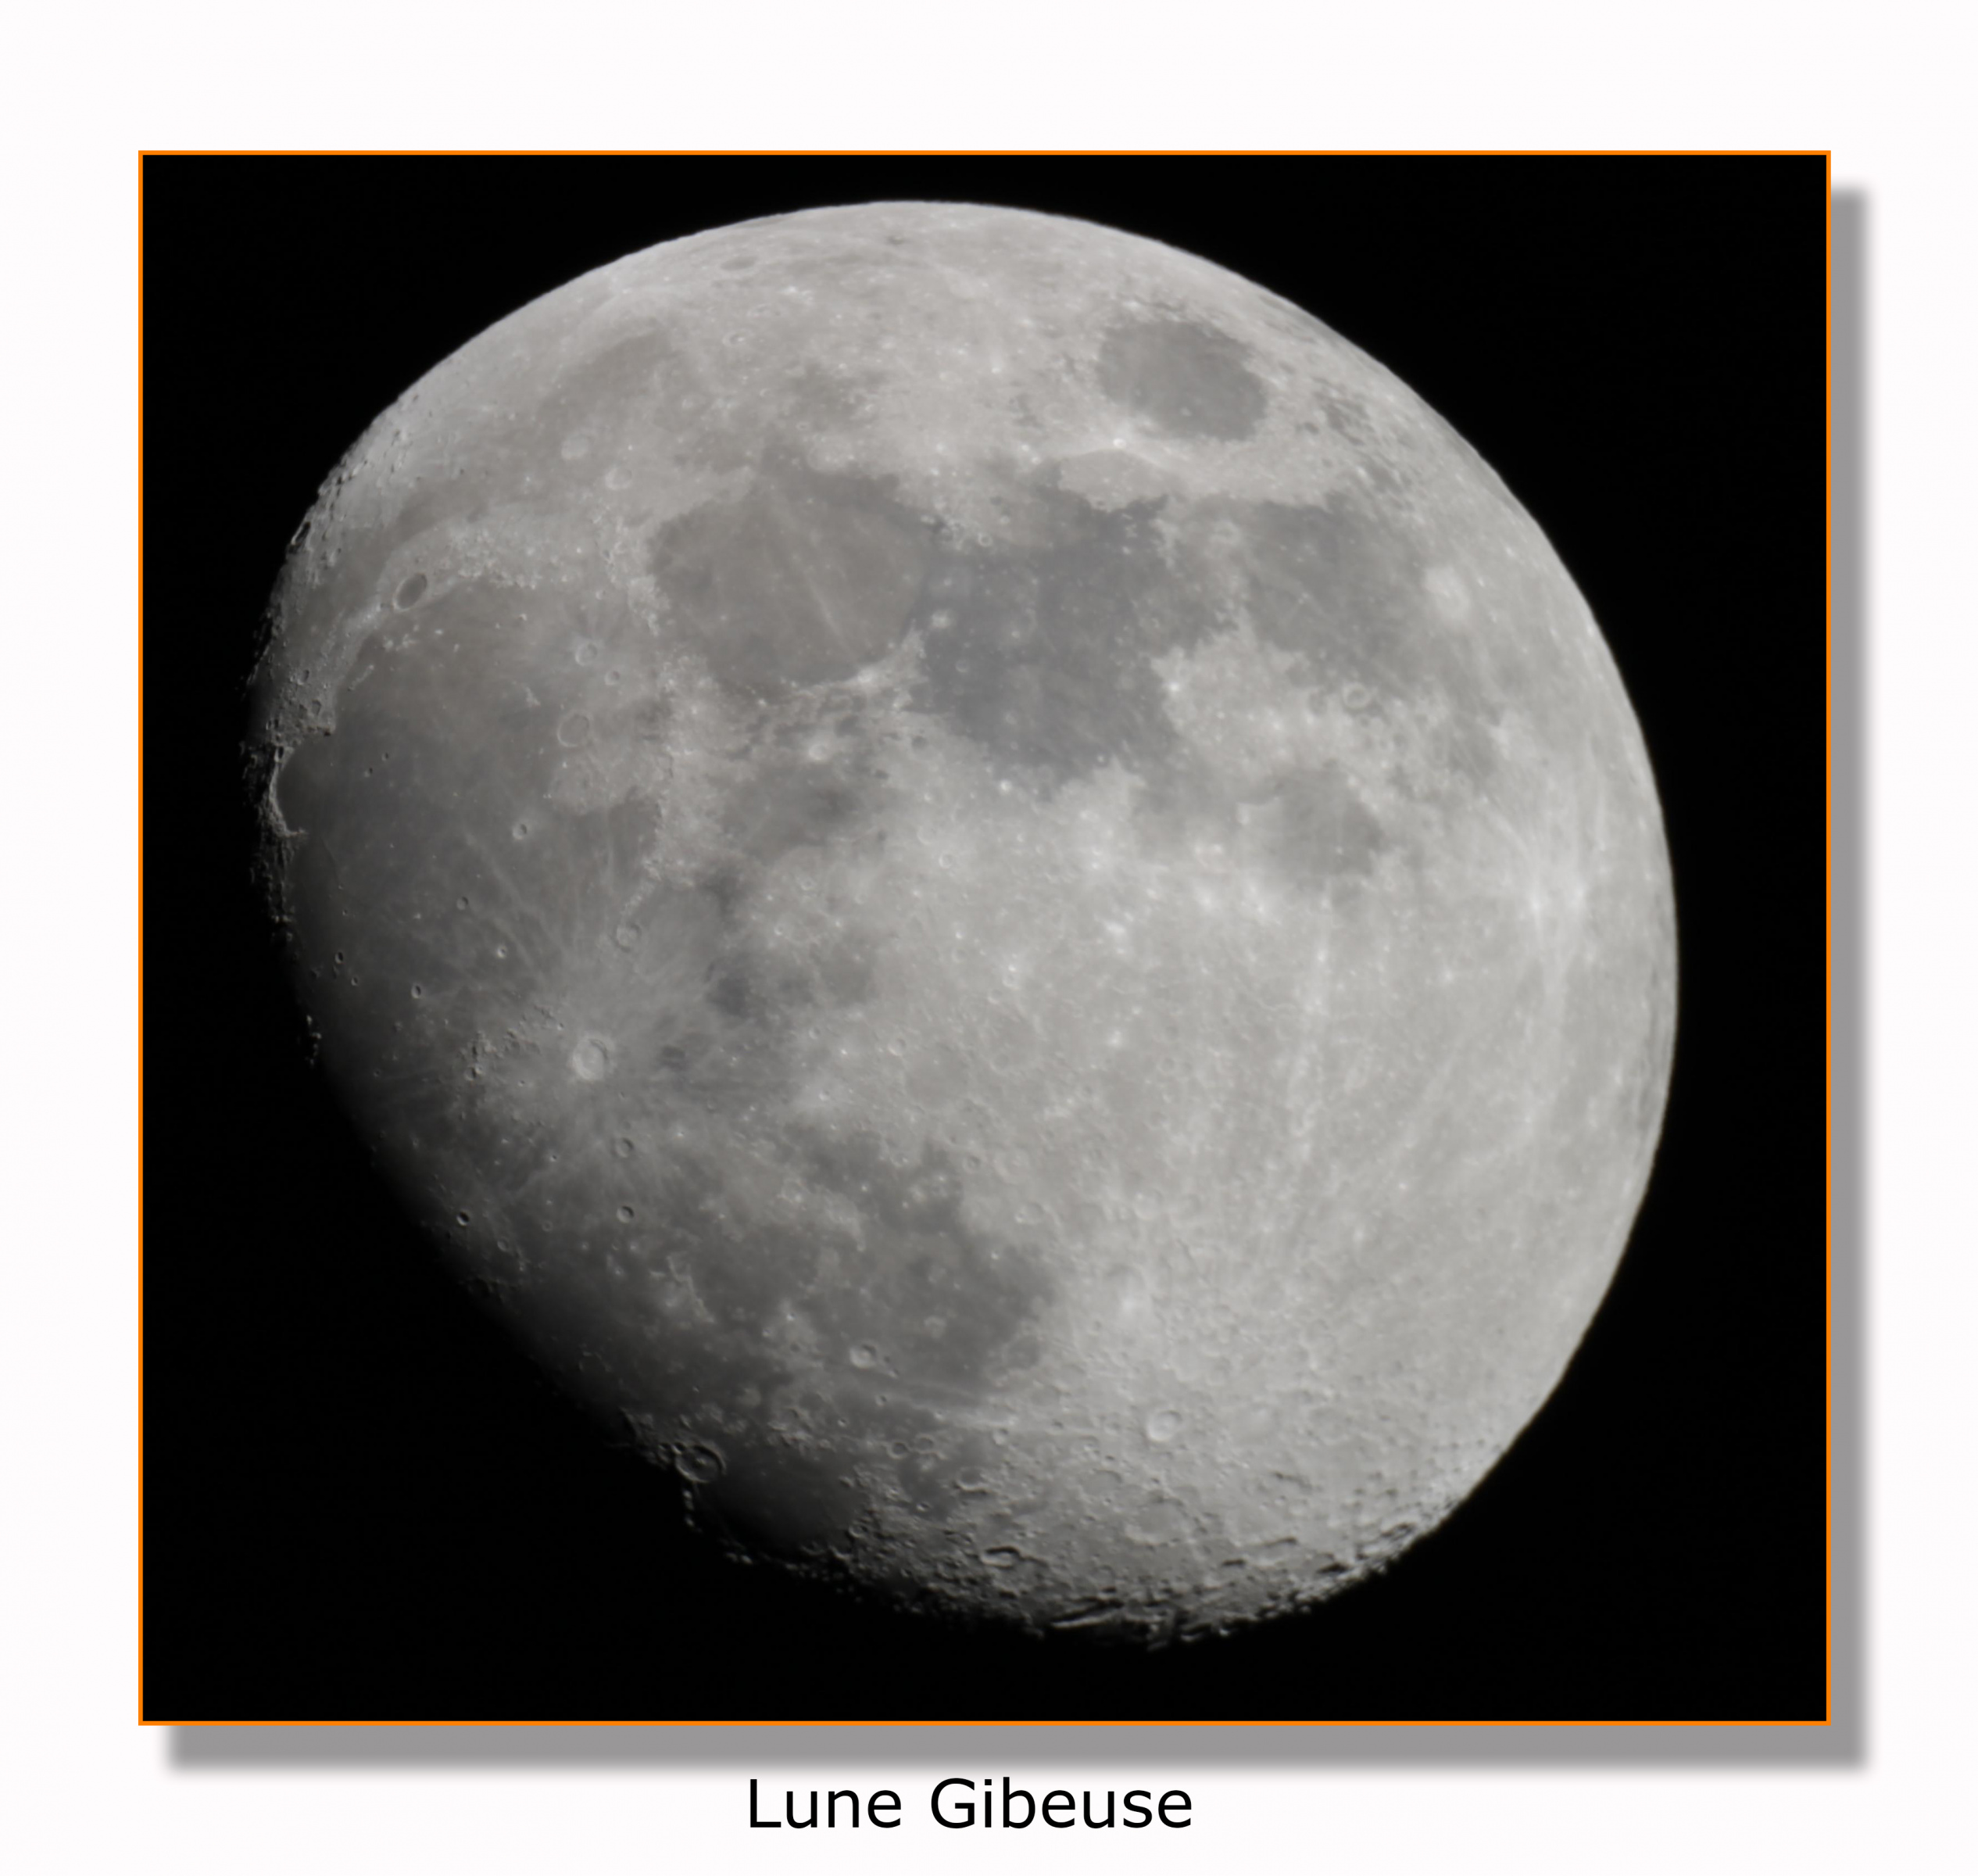 Lune gibeuse